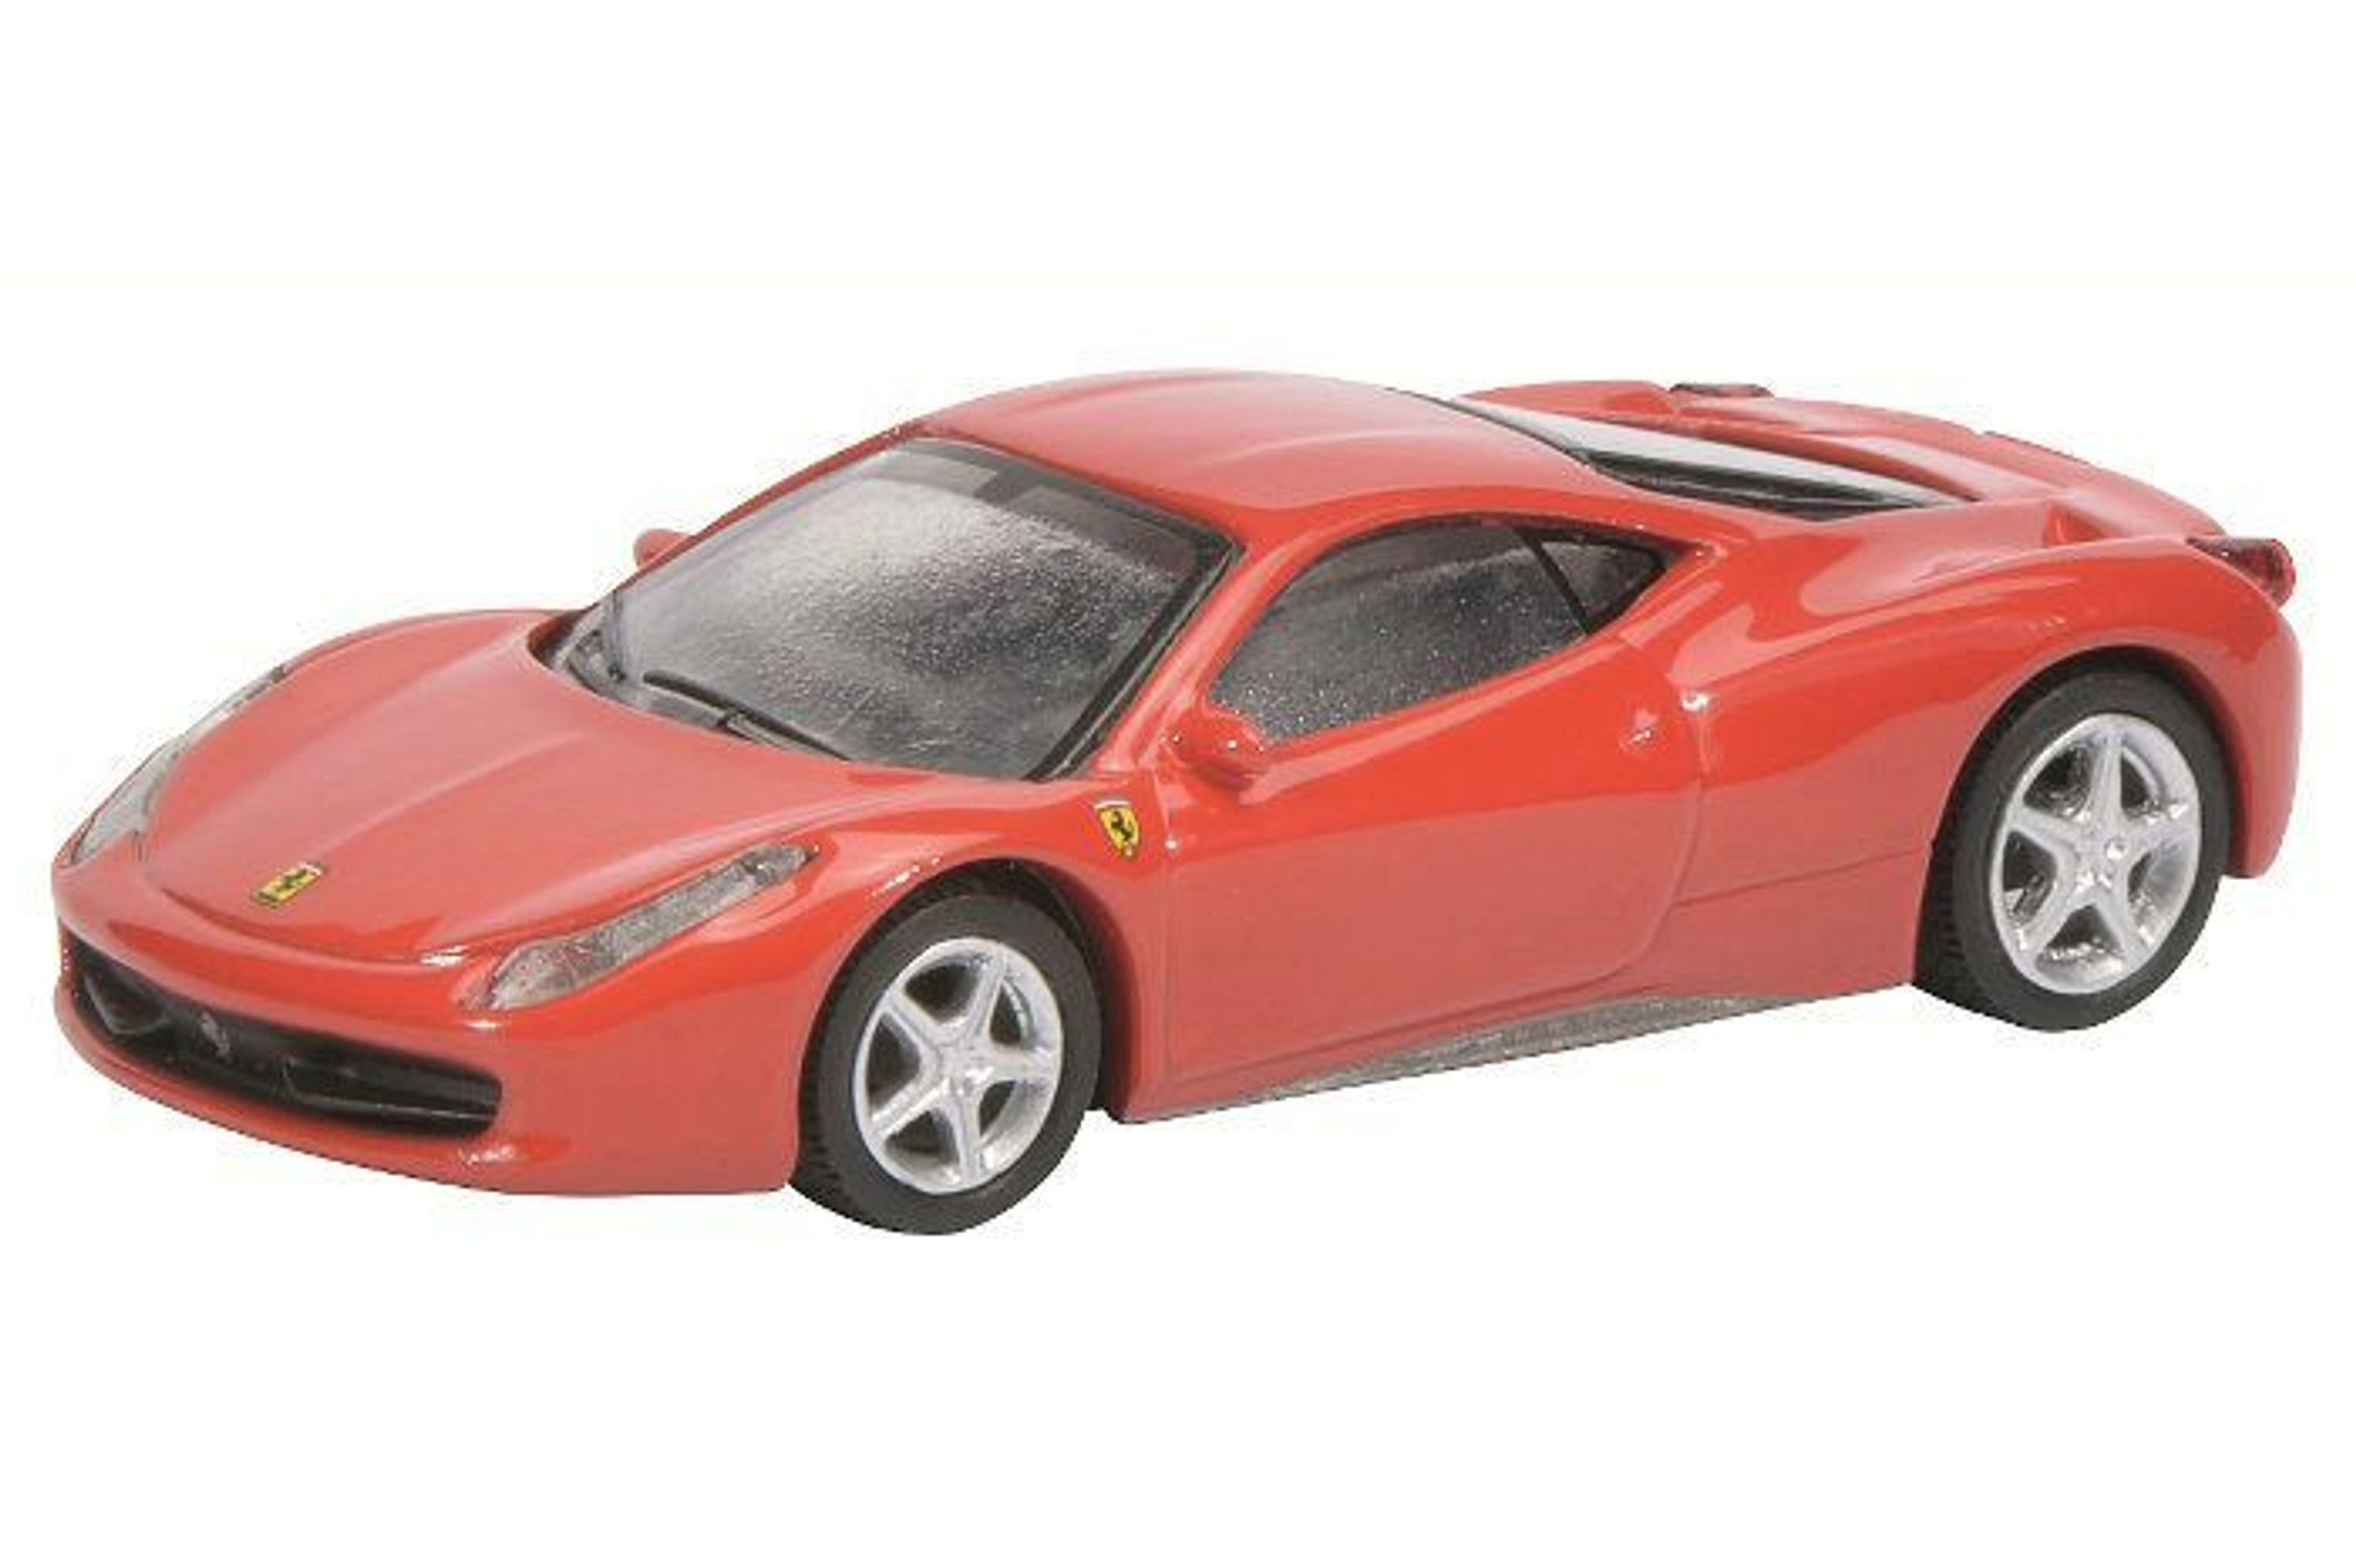 ferrari 458 italia rot art nr 452011500 schuco auto modell 1 64 kaufen bei. Black Bedroom Furniture Sets. Home Design Ideas